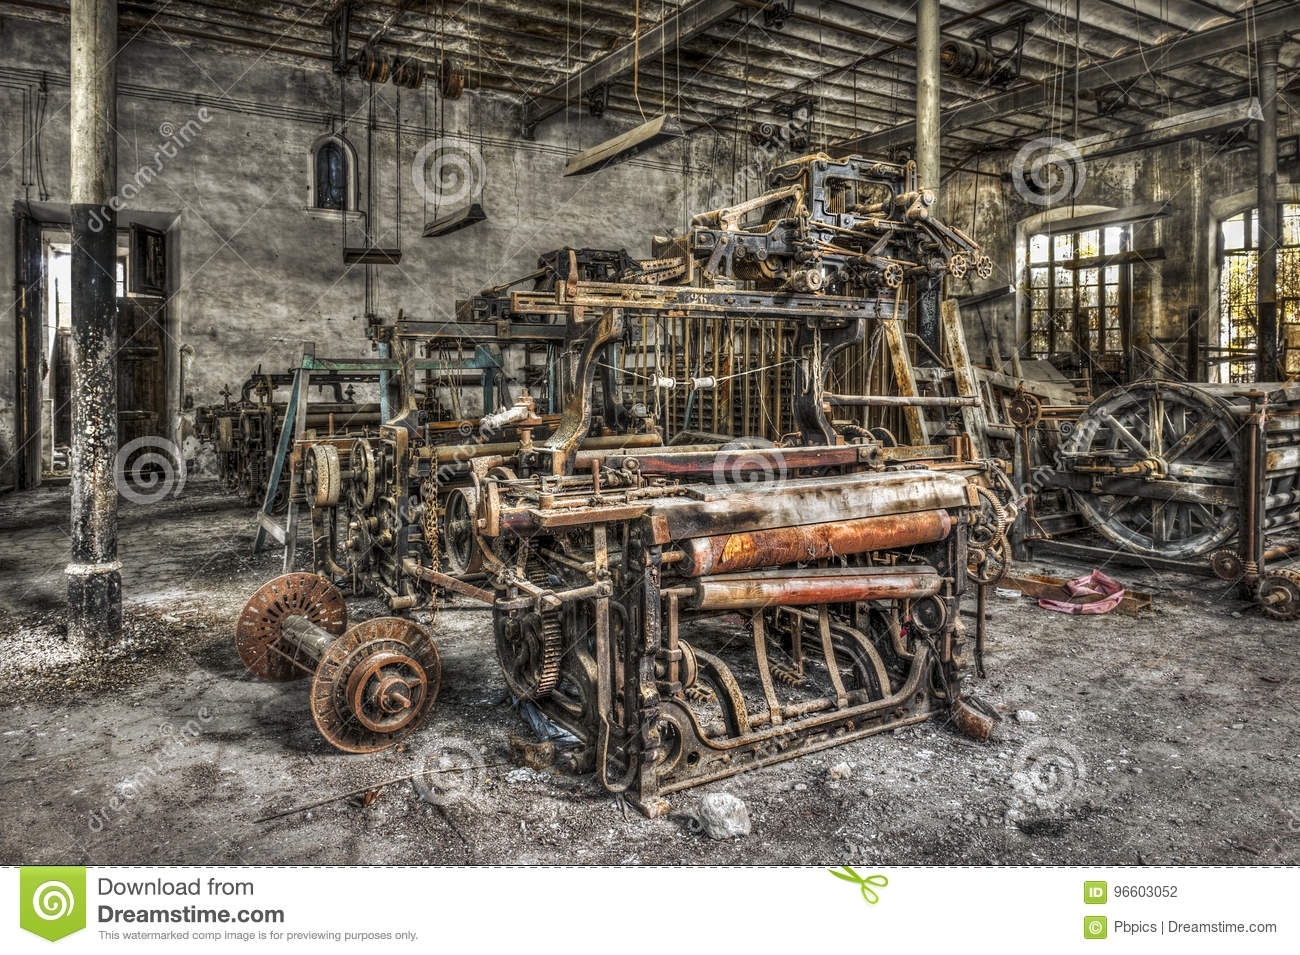 Old weaving looms and spinning machinery at an abandoned textile factory